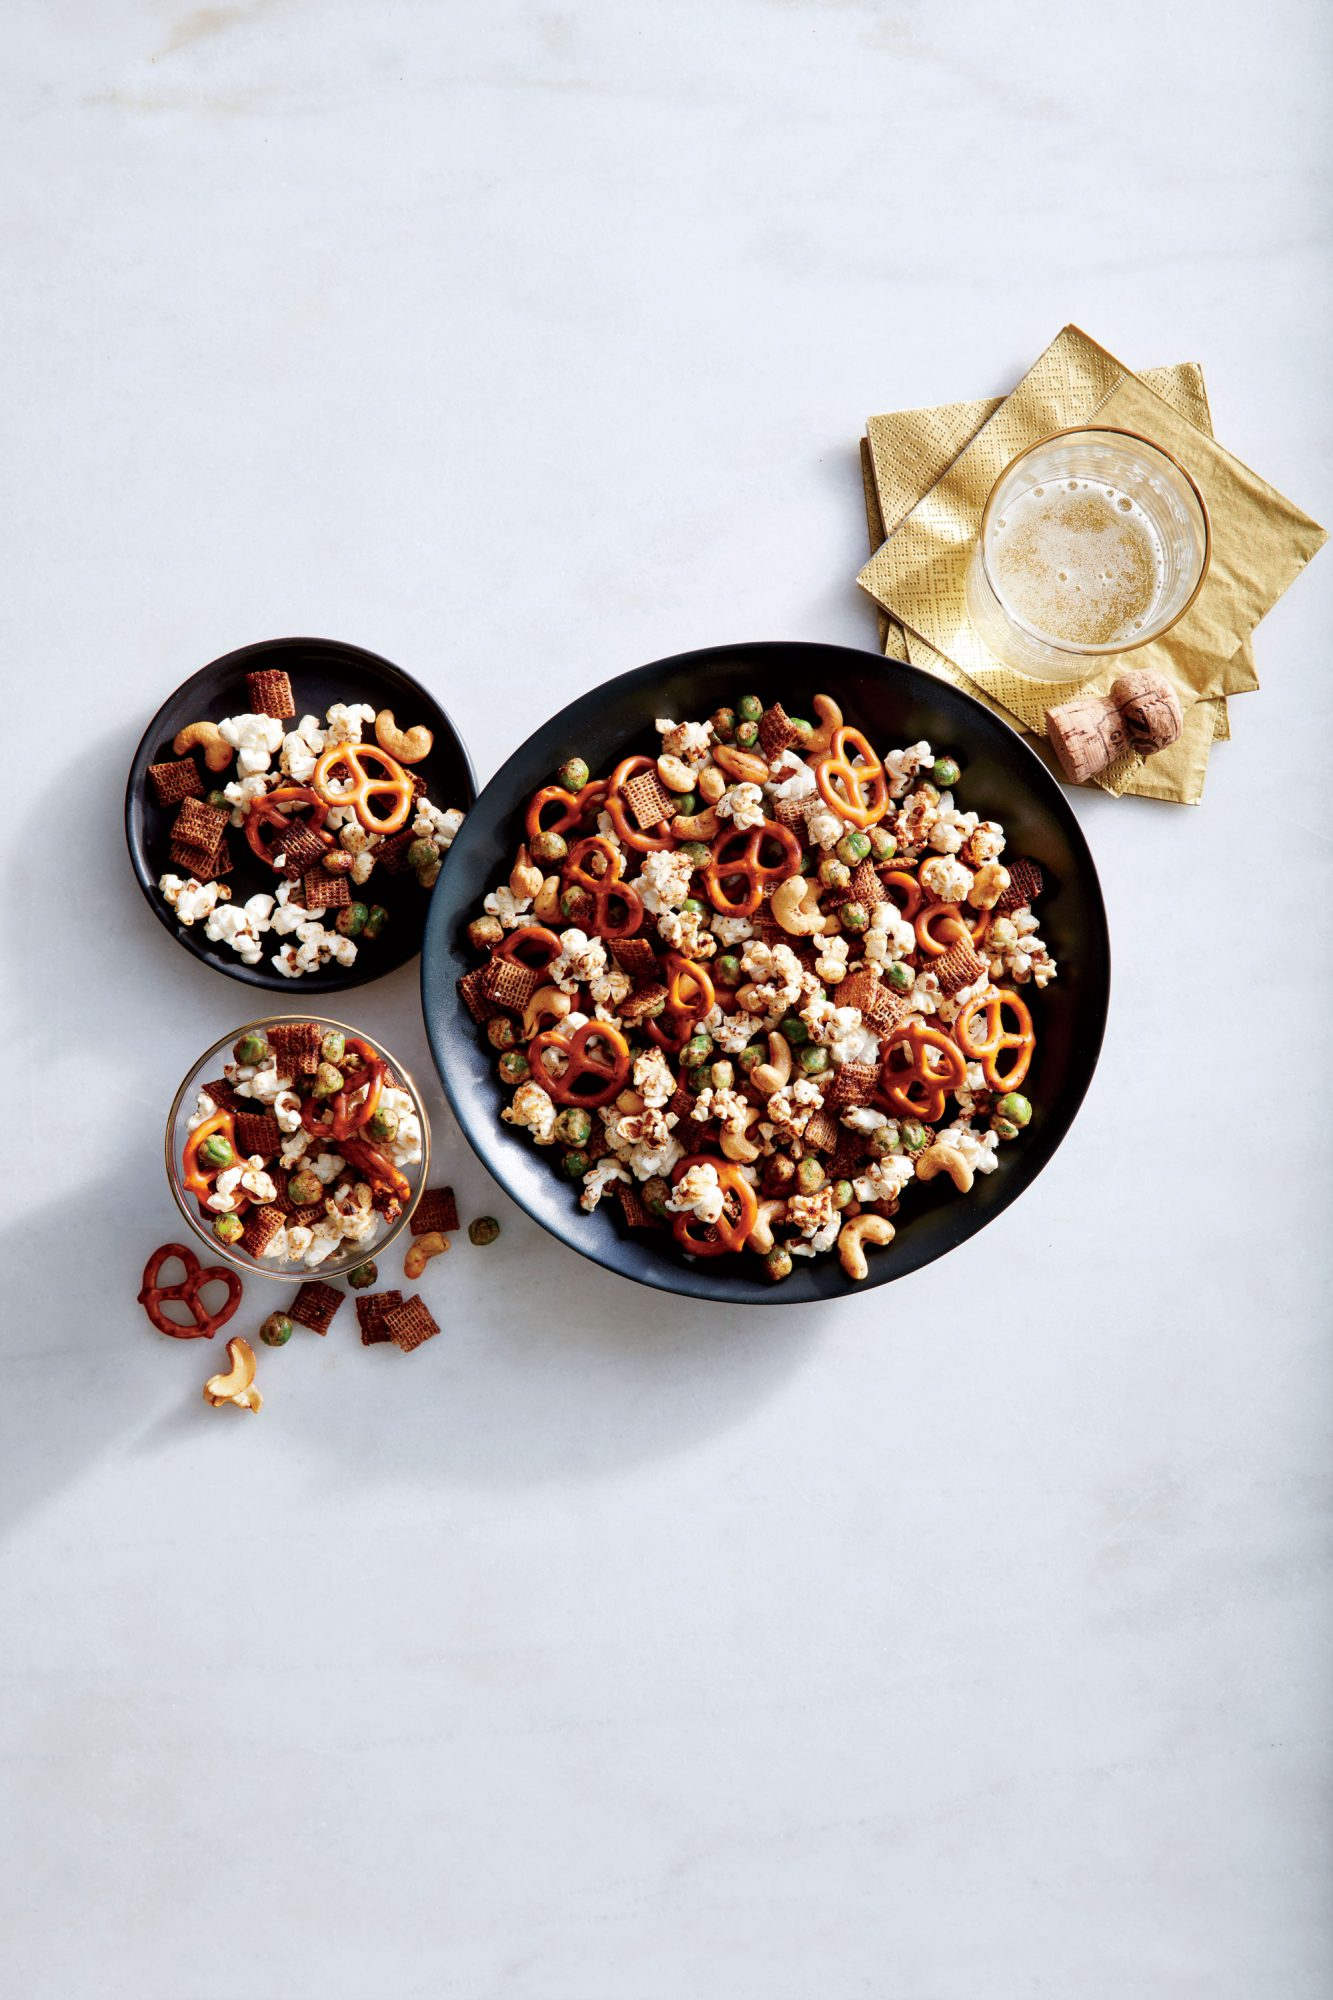 Sesame-Soy Nut and Pretzel Mix image